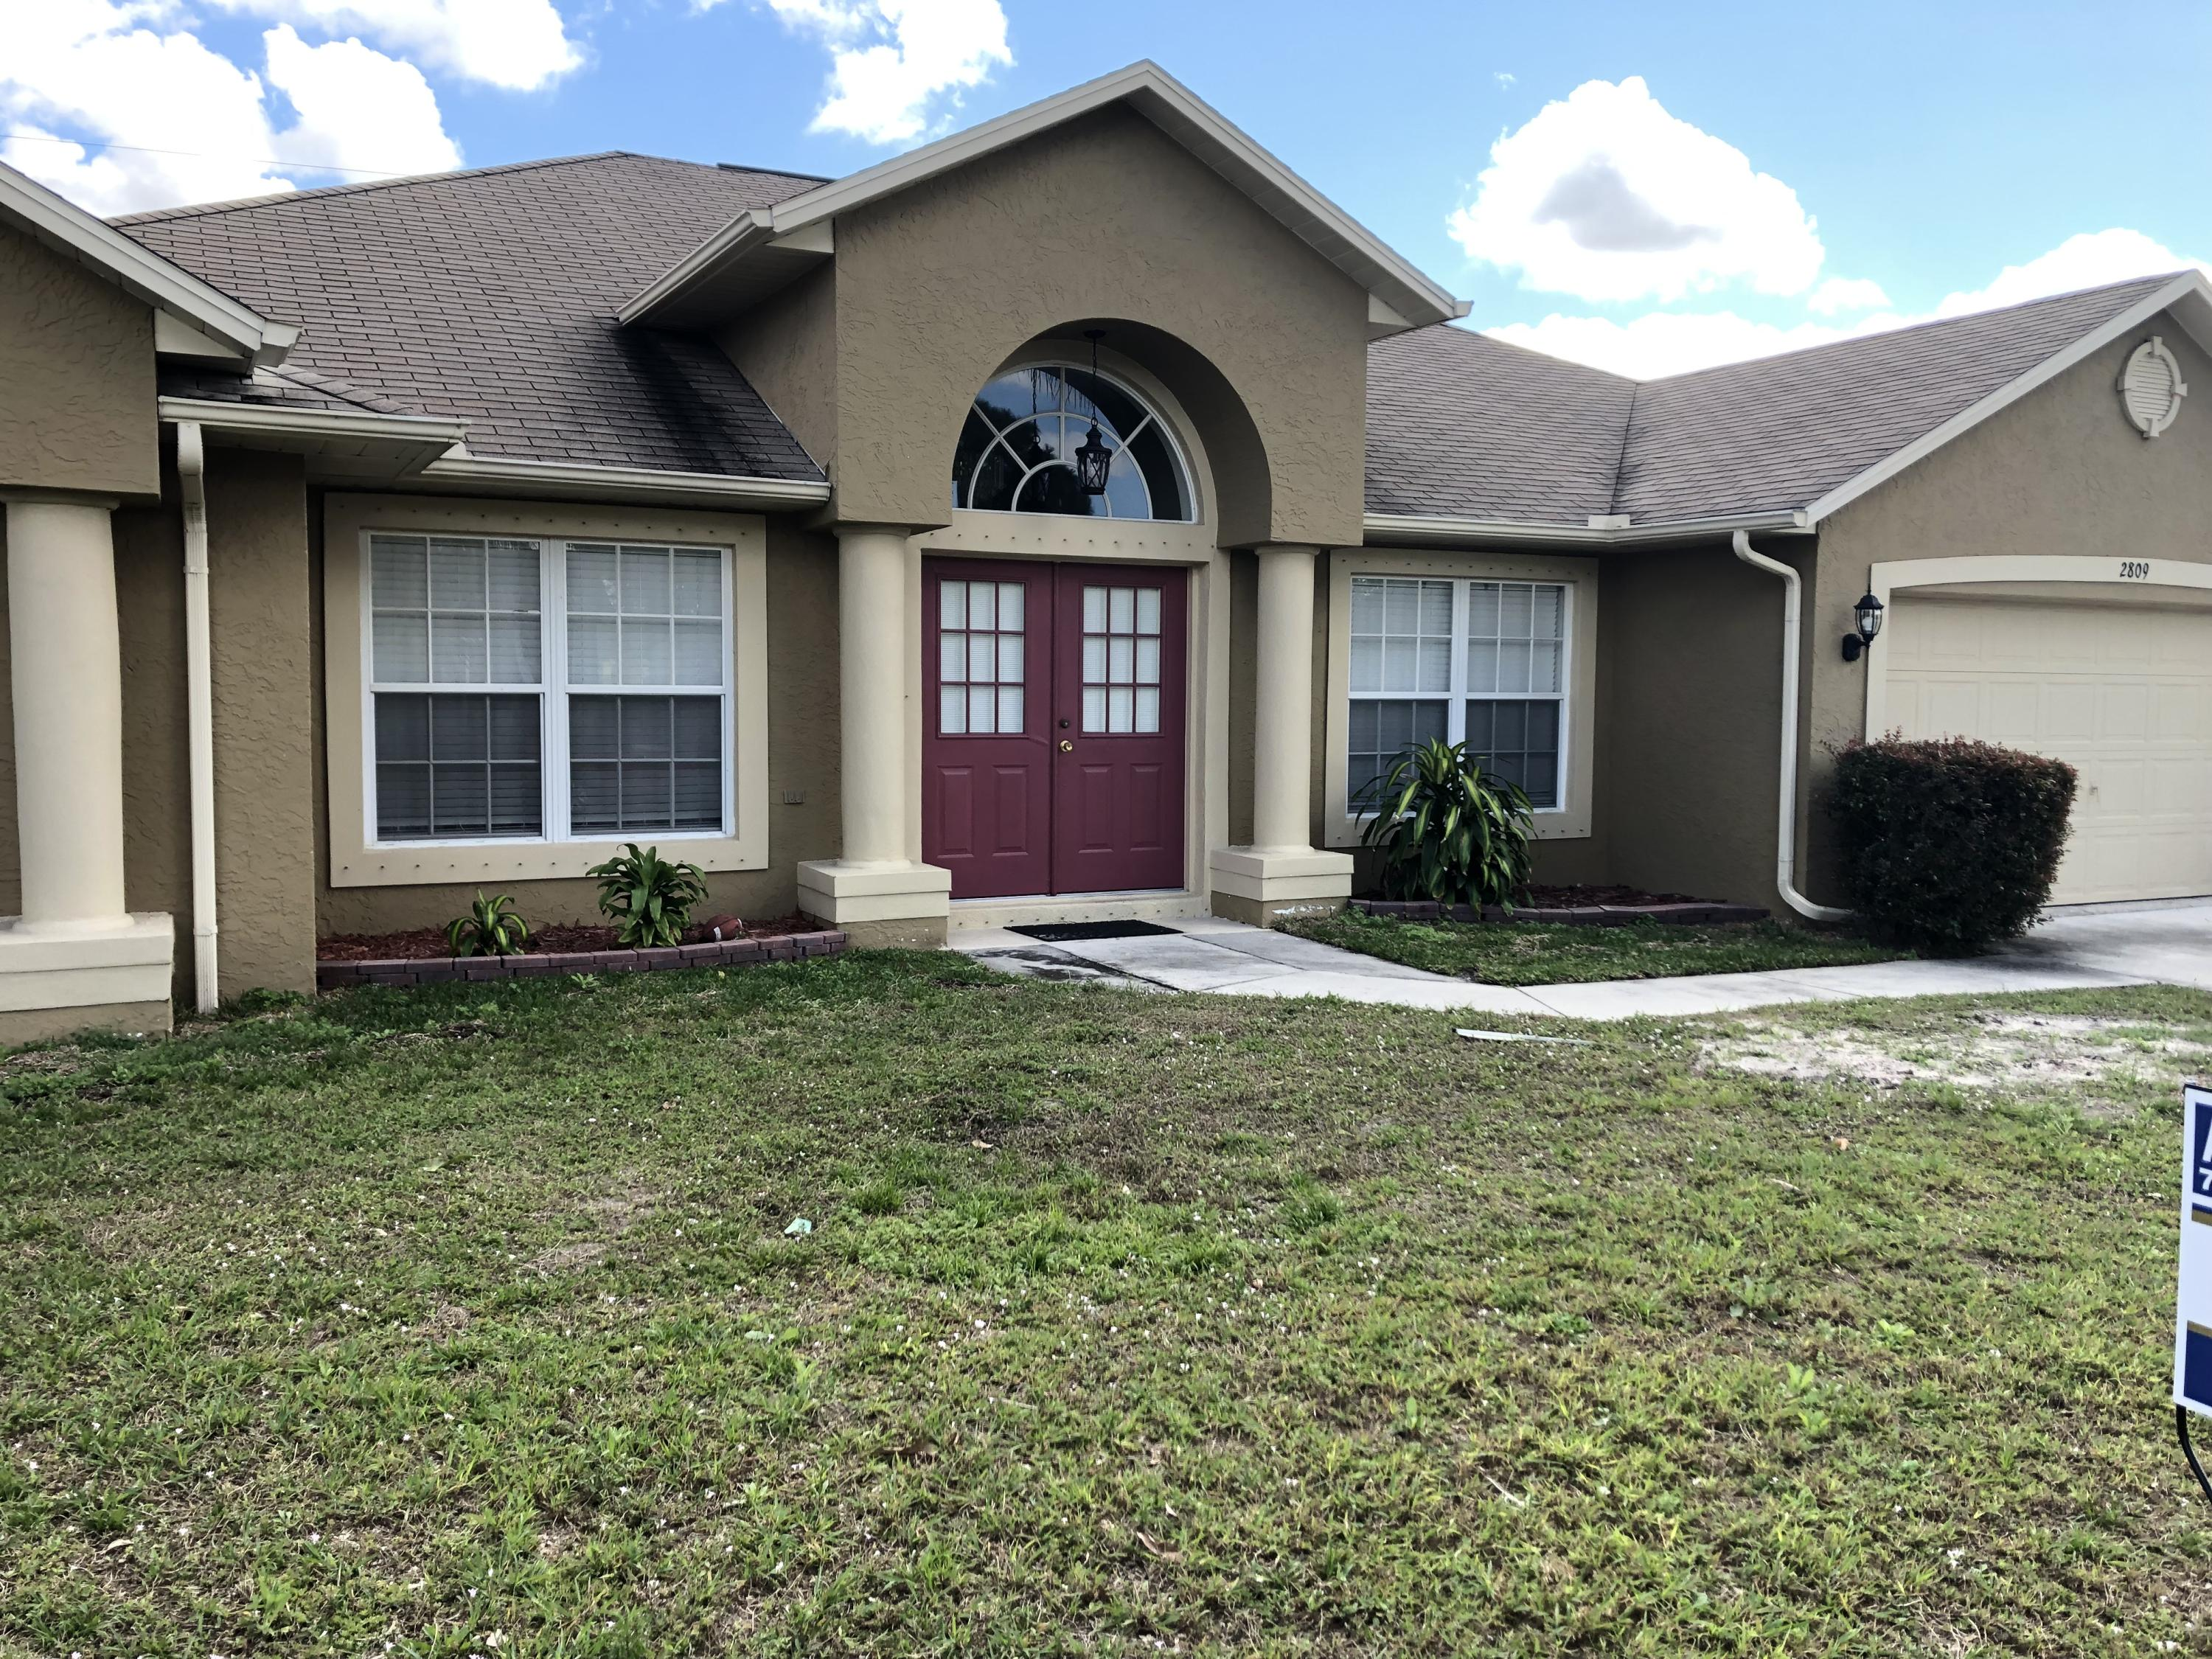 Photo of home for sale in Port Saint Lucie FL